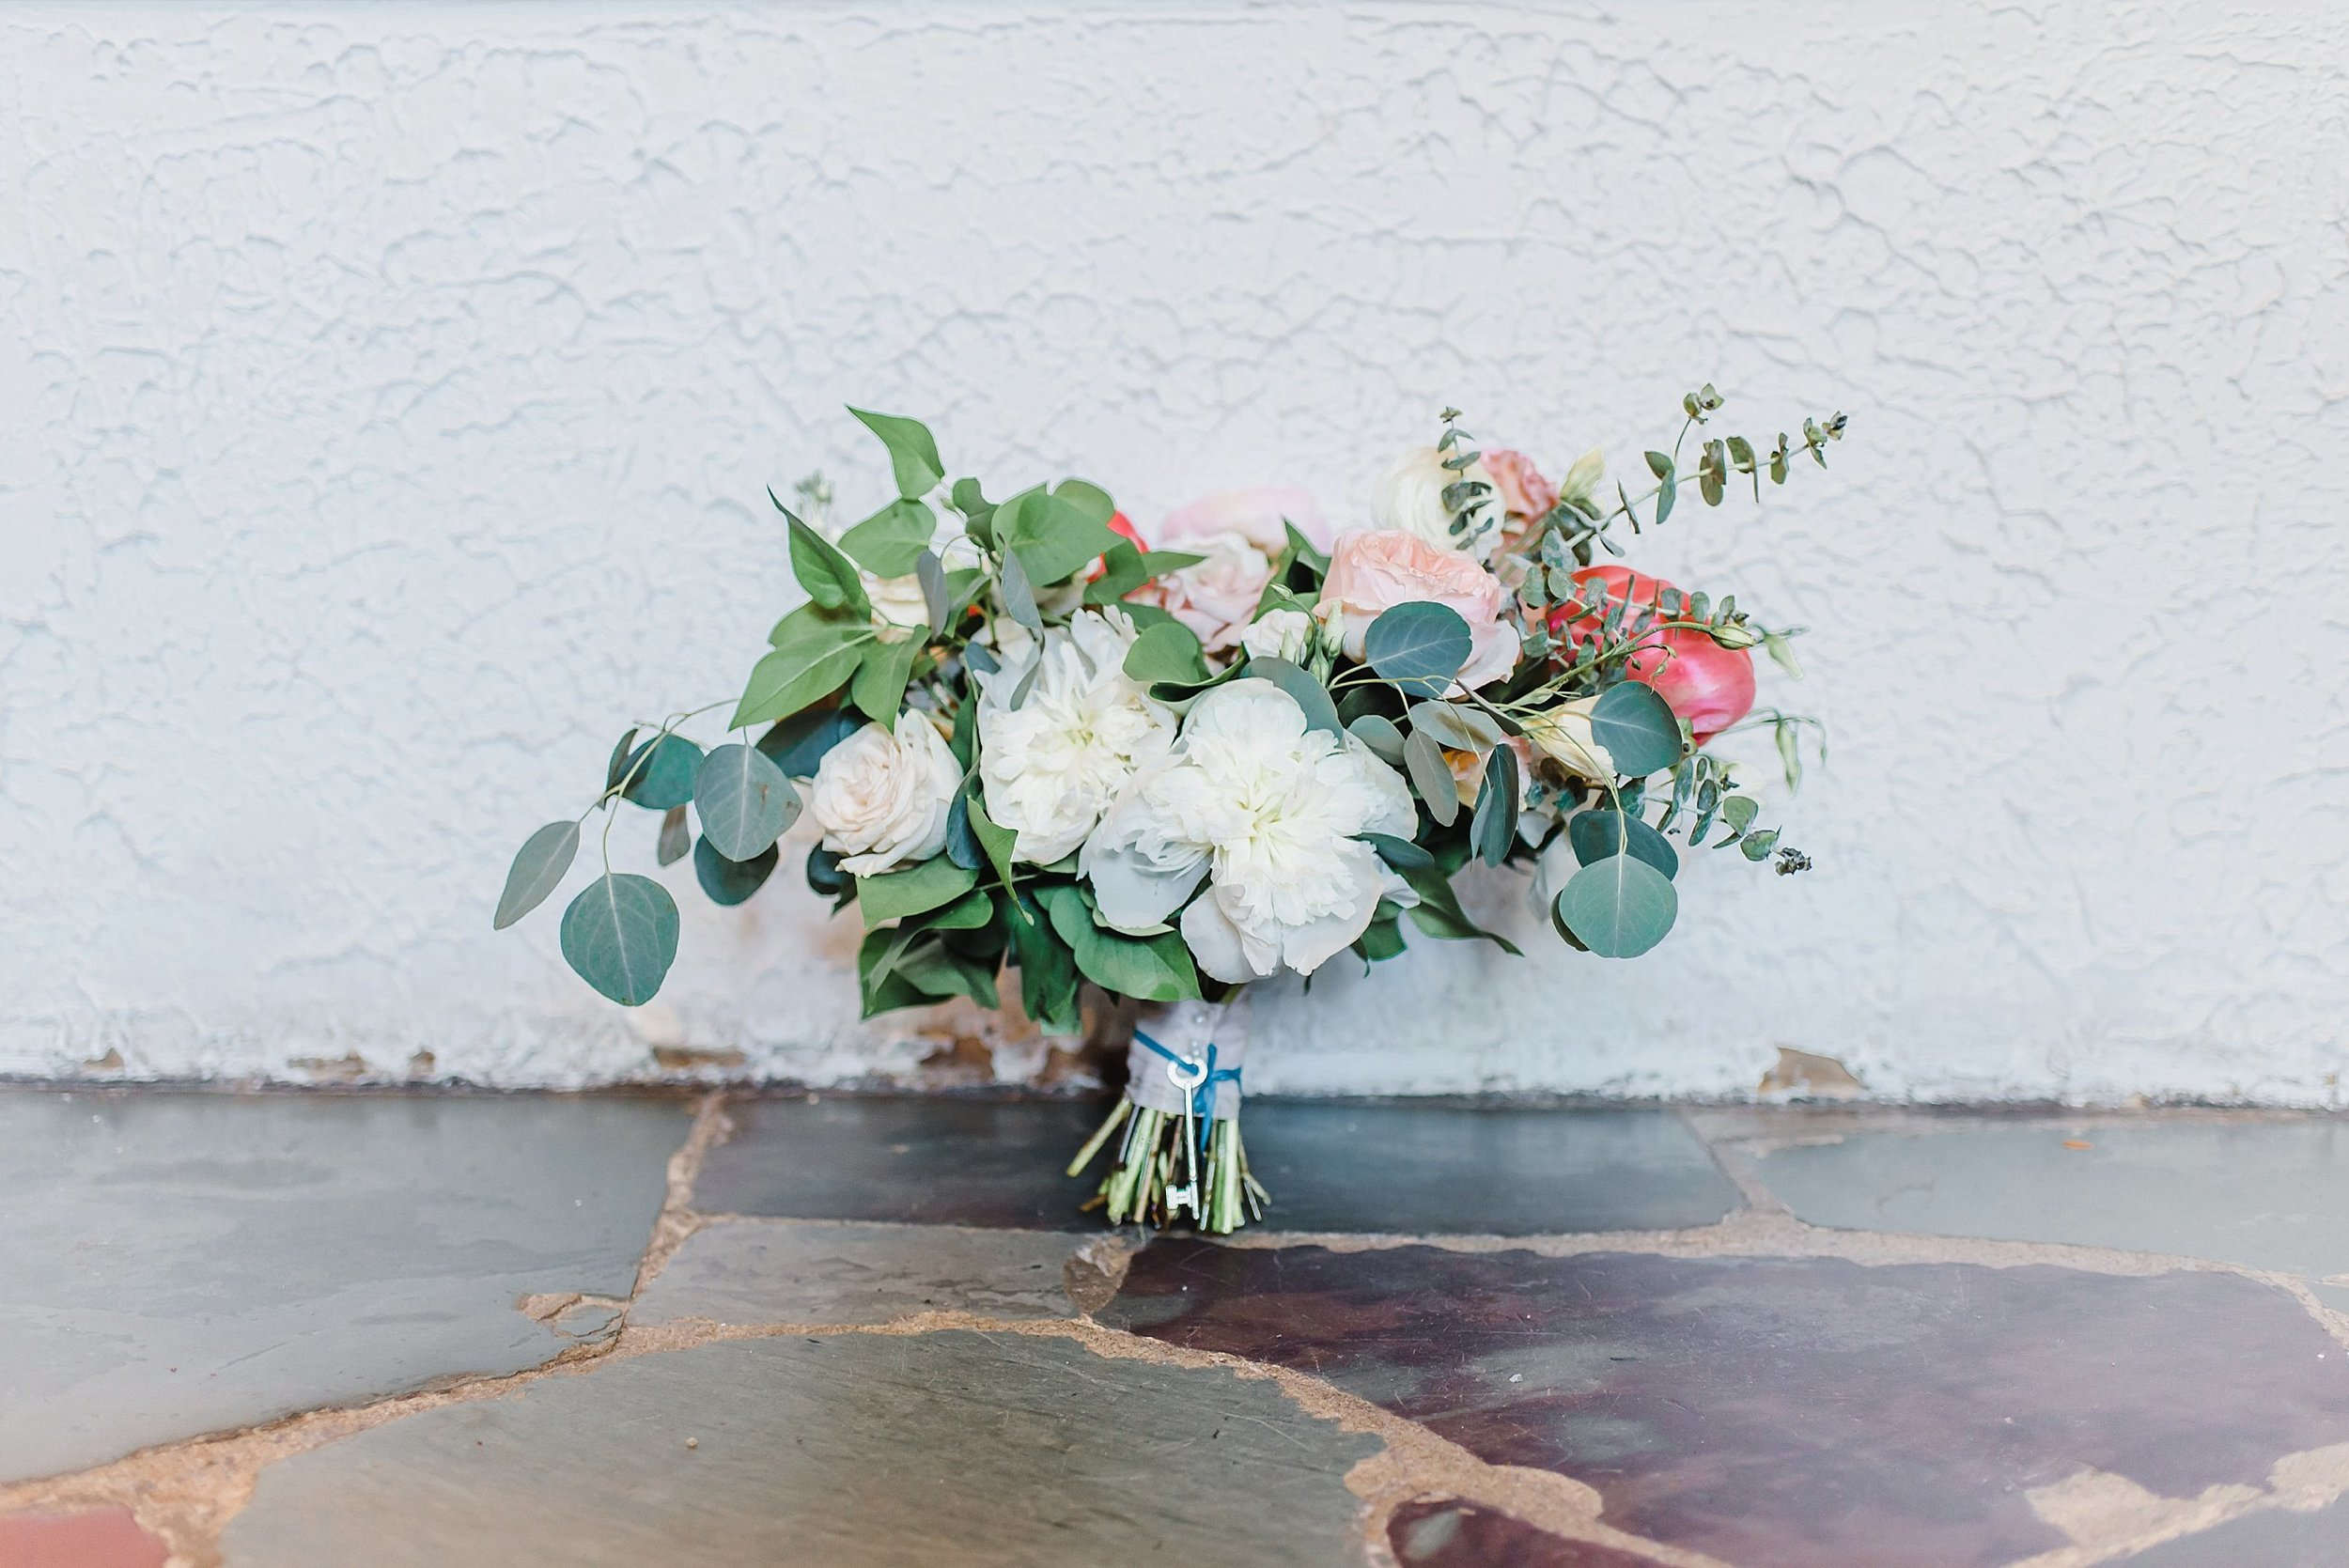 The most beautiful garden-inspired bouquet designed by Brittany Frid from Frid.